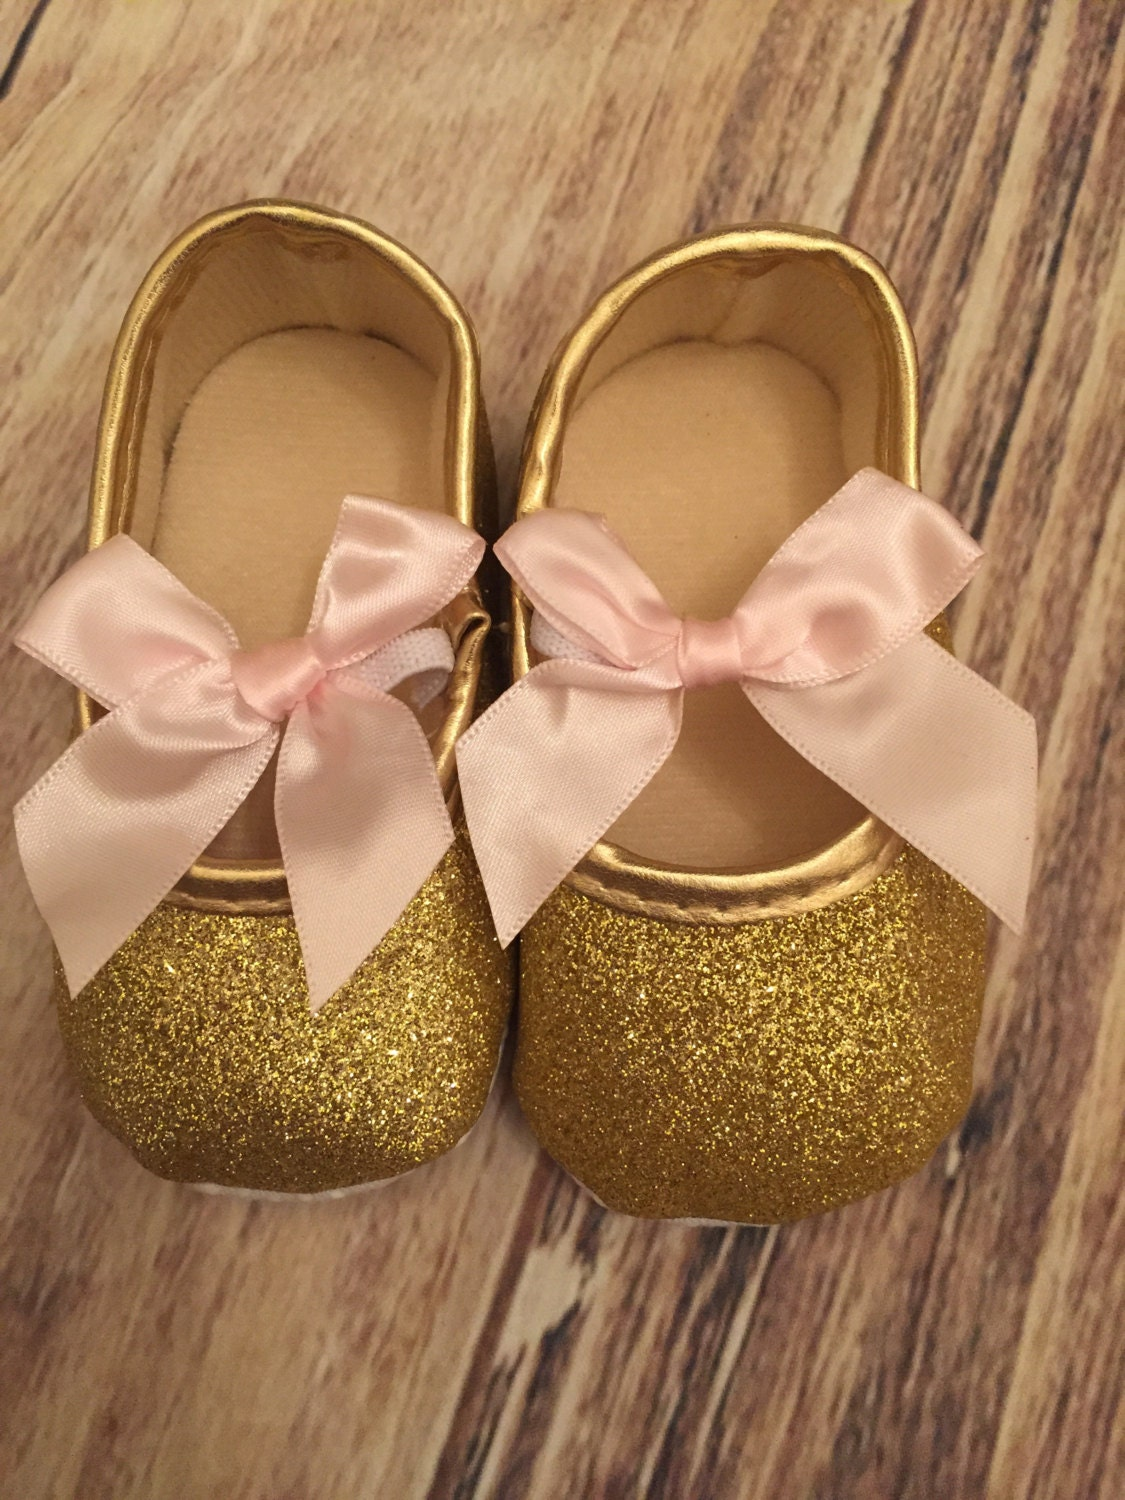 Gold baby shoes | Etsy